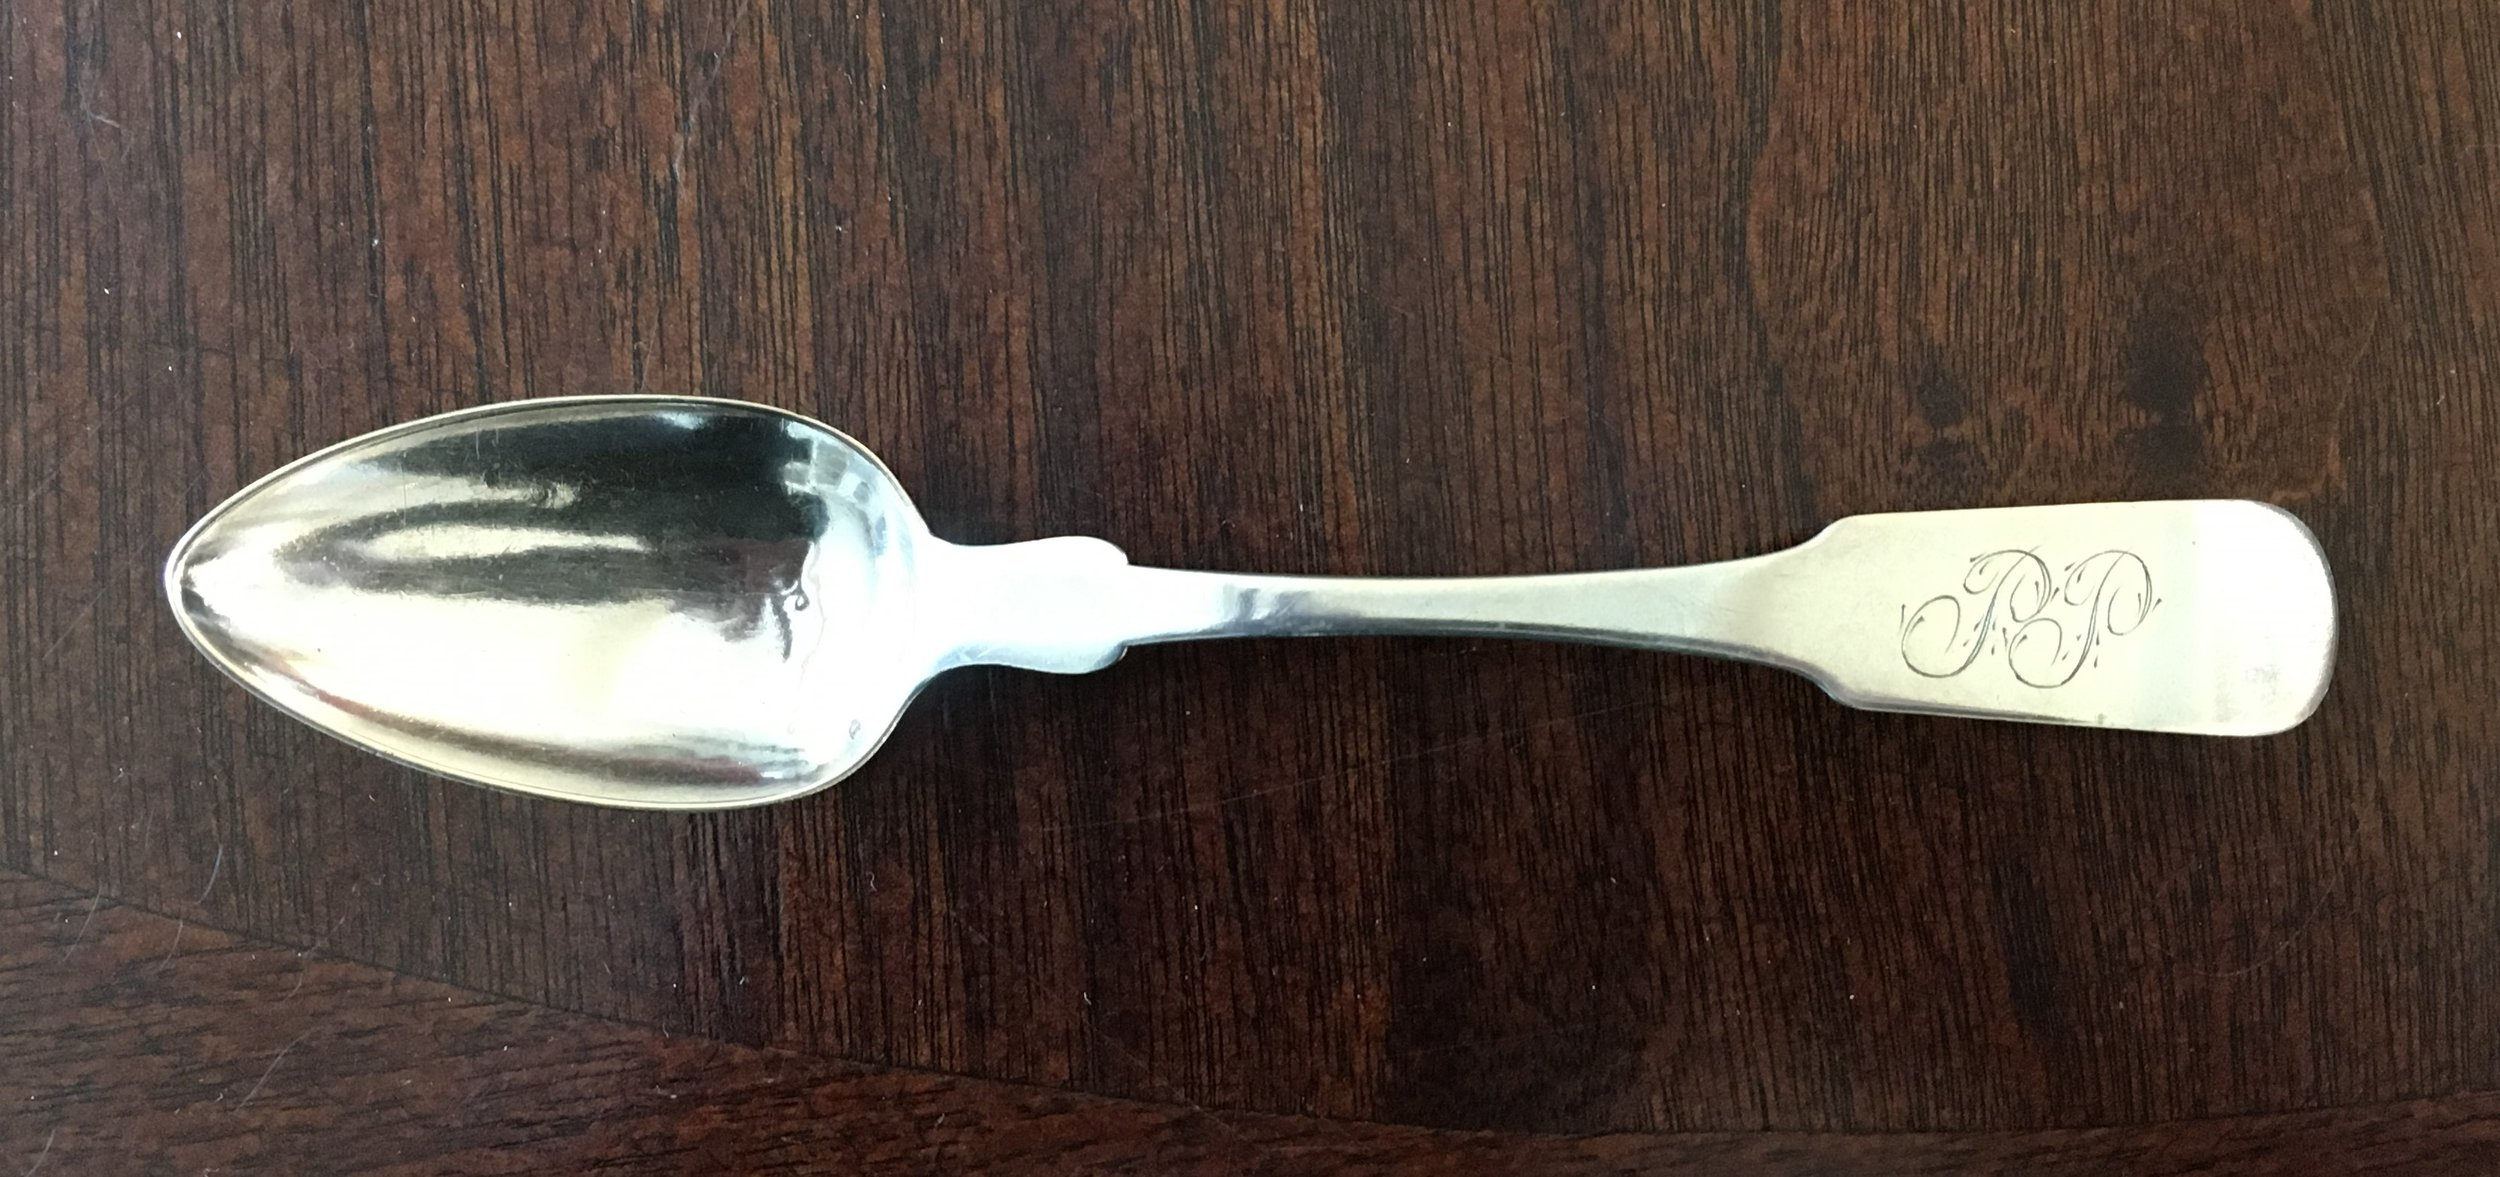 Spoon.coin.silver.jpg